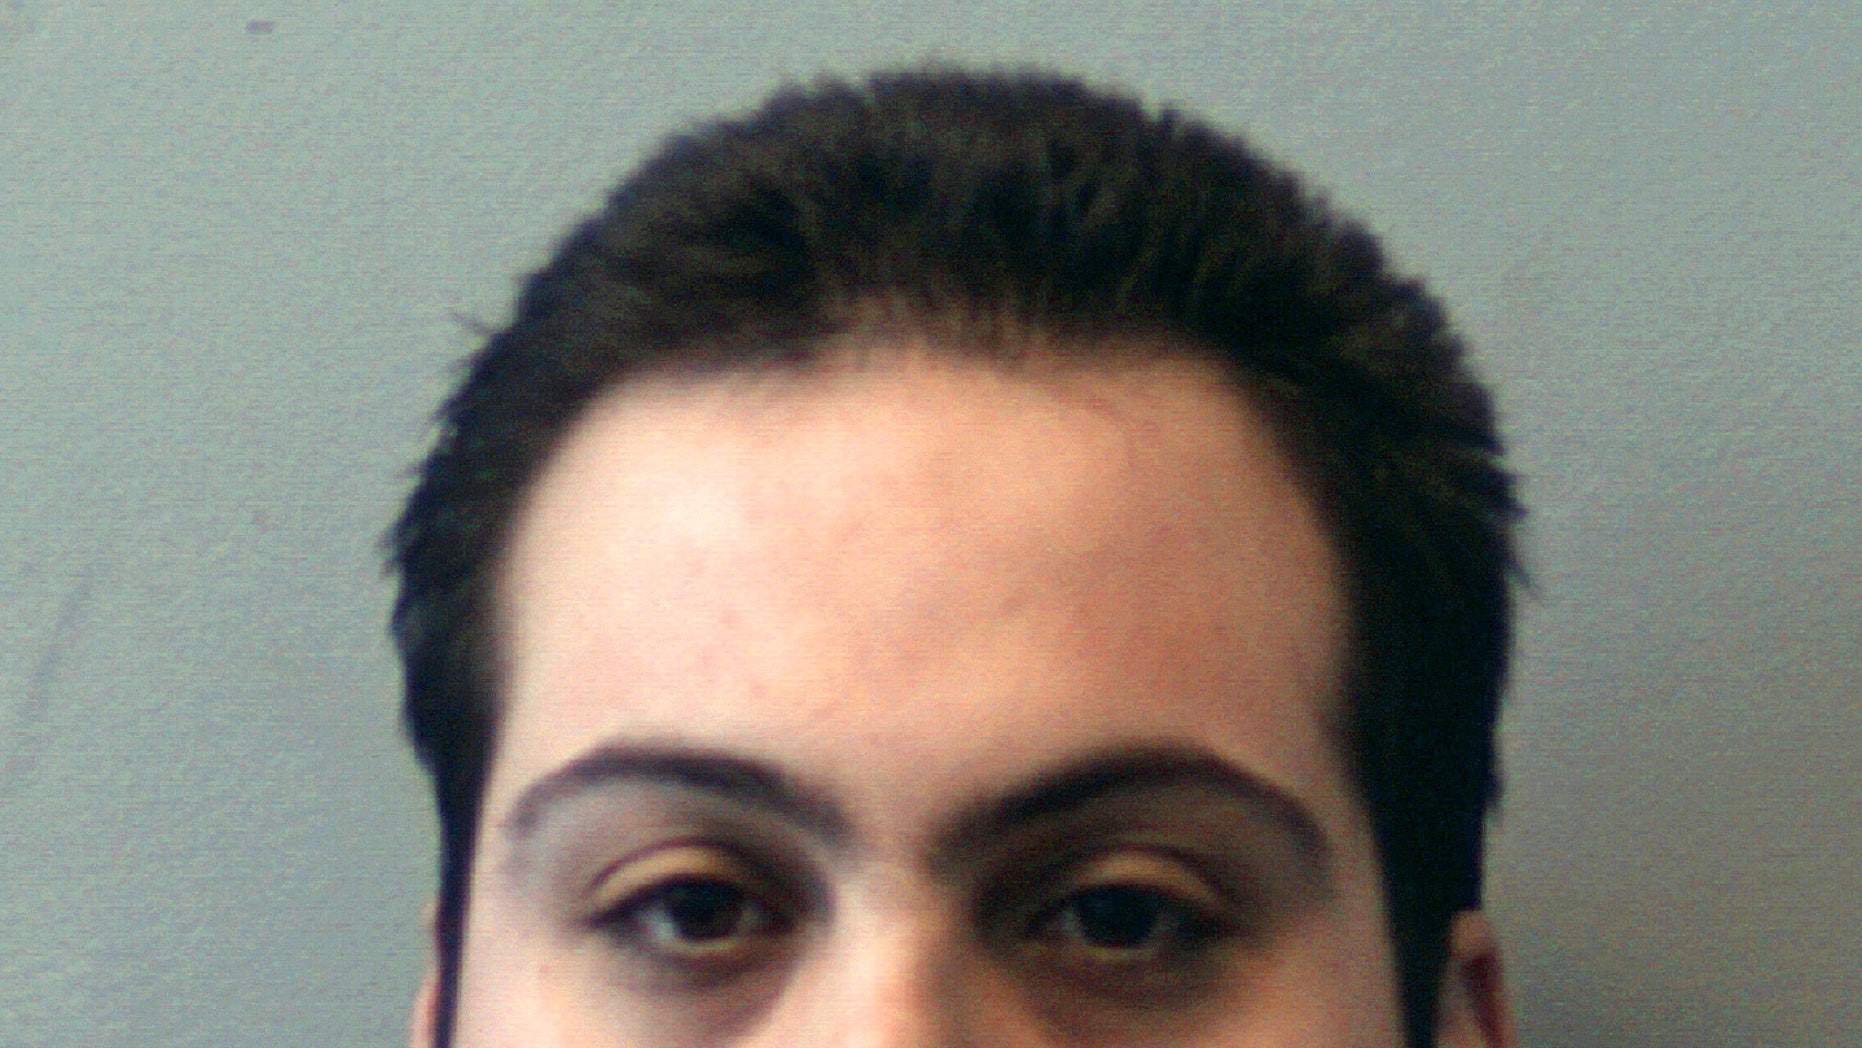 FILE - This booking photo released Thursday, March 1, 2018, by the Beverly Police Department shows Daniel Frisiello, of Beverly, Mass., accused of mailing five envelopes containing a white powder. Prosecutors are seeking three years in prison for Frisiello who admitted to sending threatening letters filled with white powder to President Donald Trump's sons and others. Frisiello is set to be sentenced Friday, April 19, 2019, in Boston federal court. (Beverly Police Department via AP, File)